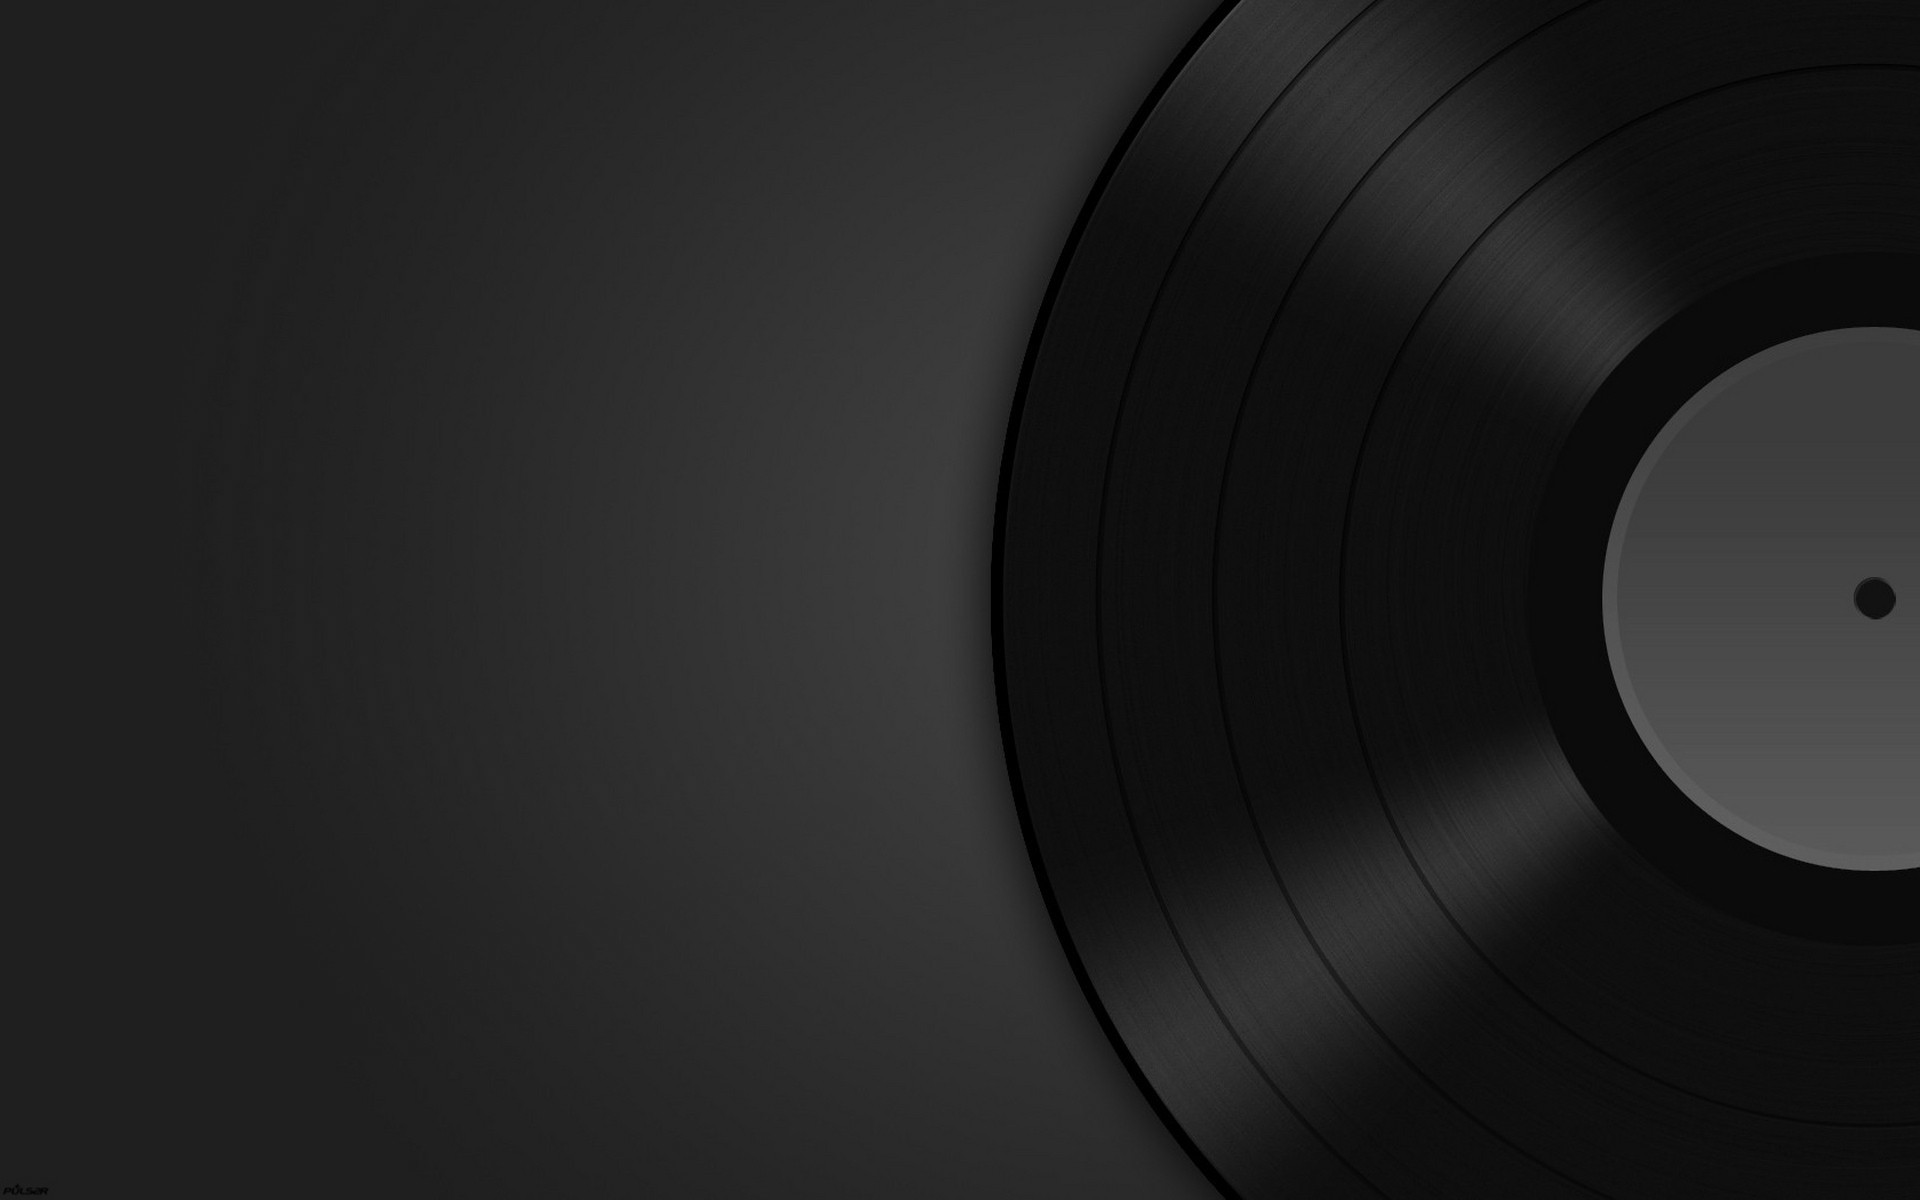 Music Wallpapers Hd 74 Background Pictures